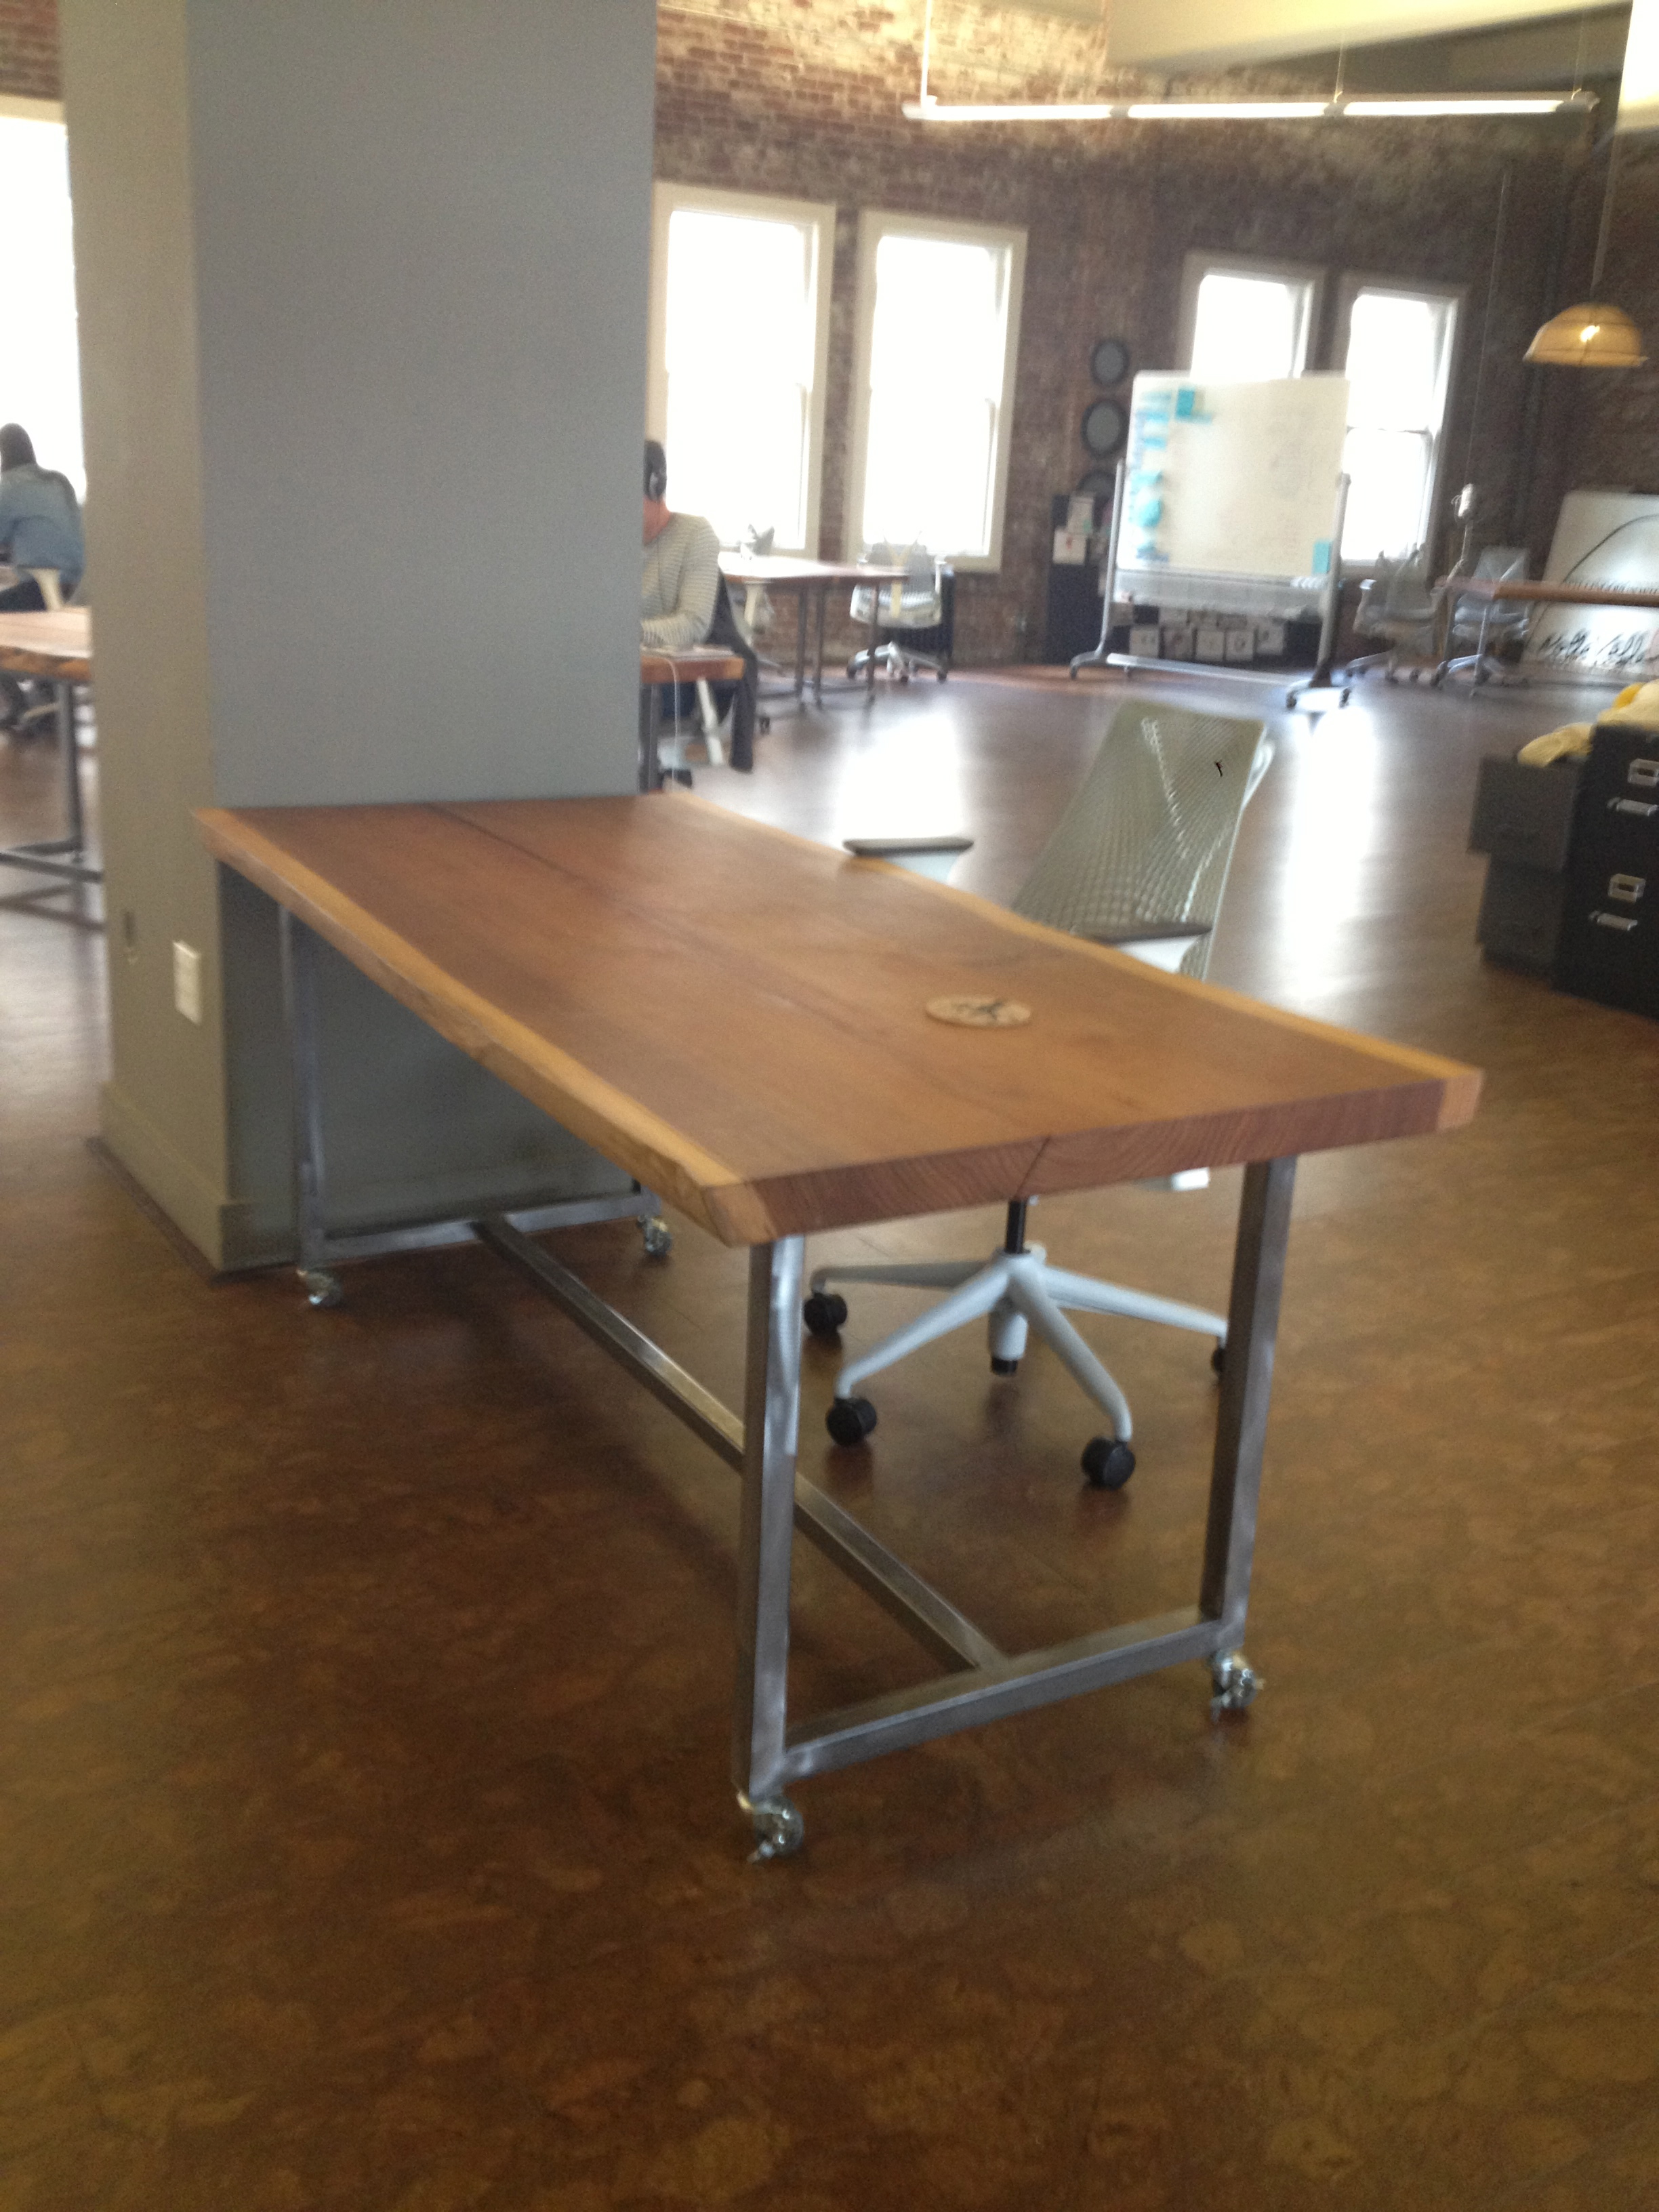 Charmant Solid Wood Top With Metal Base.